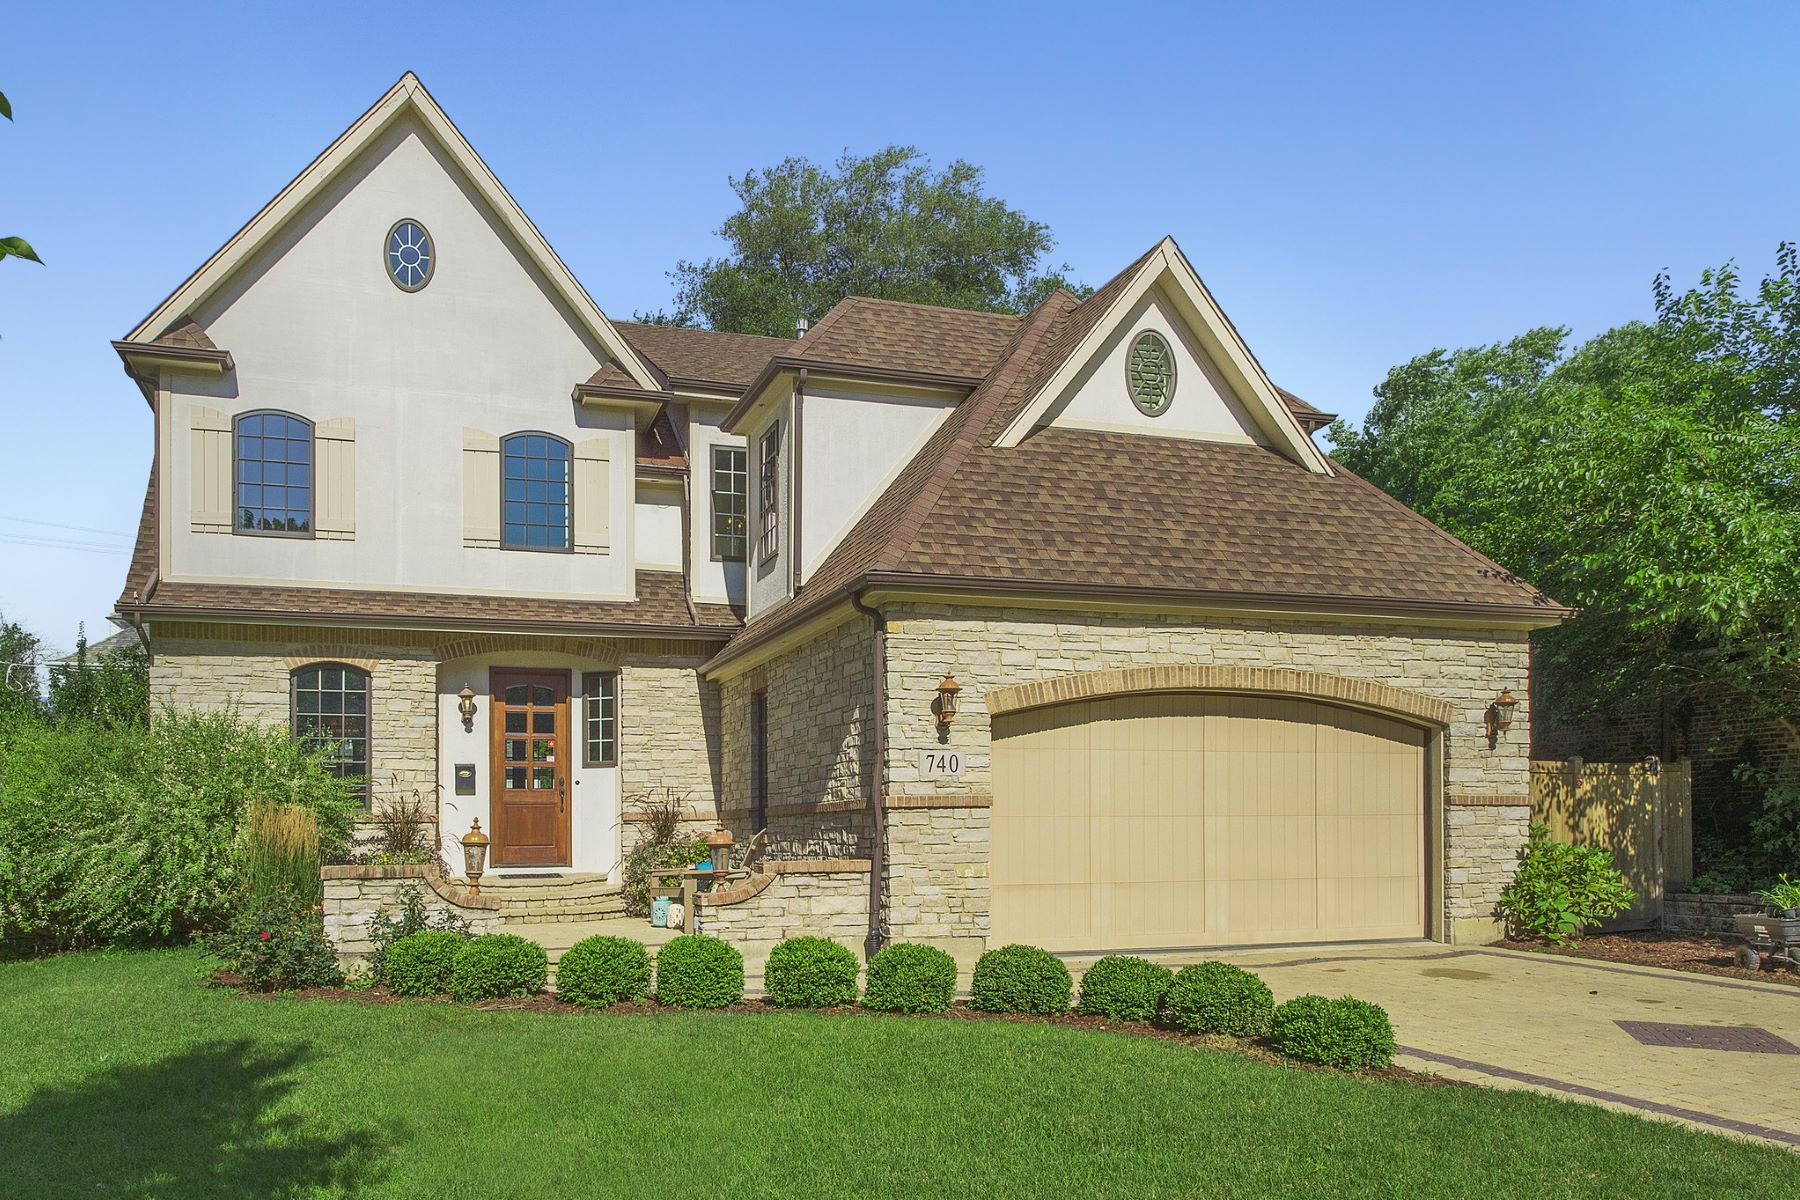 Single Family Home for Sale at 740 Phillippa Street 740 Phillippa St. Hinsdale, Illinois, 60521 United States